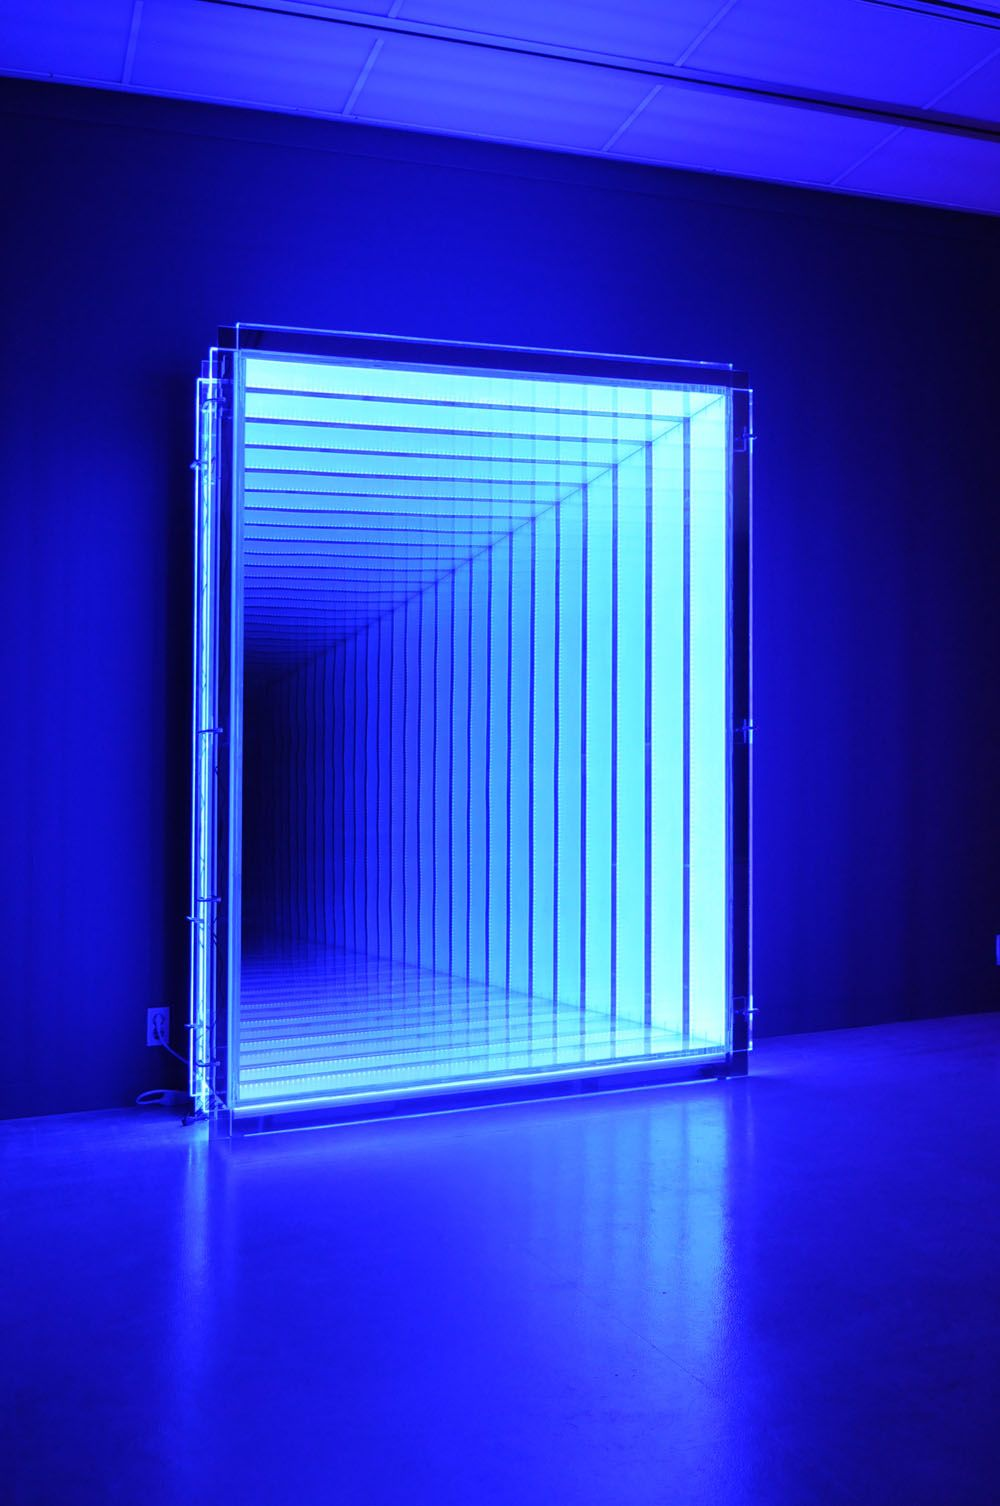 Pingl par matt fournier sur my home pinterest for Neon artiste contemporain